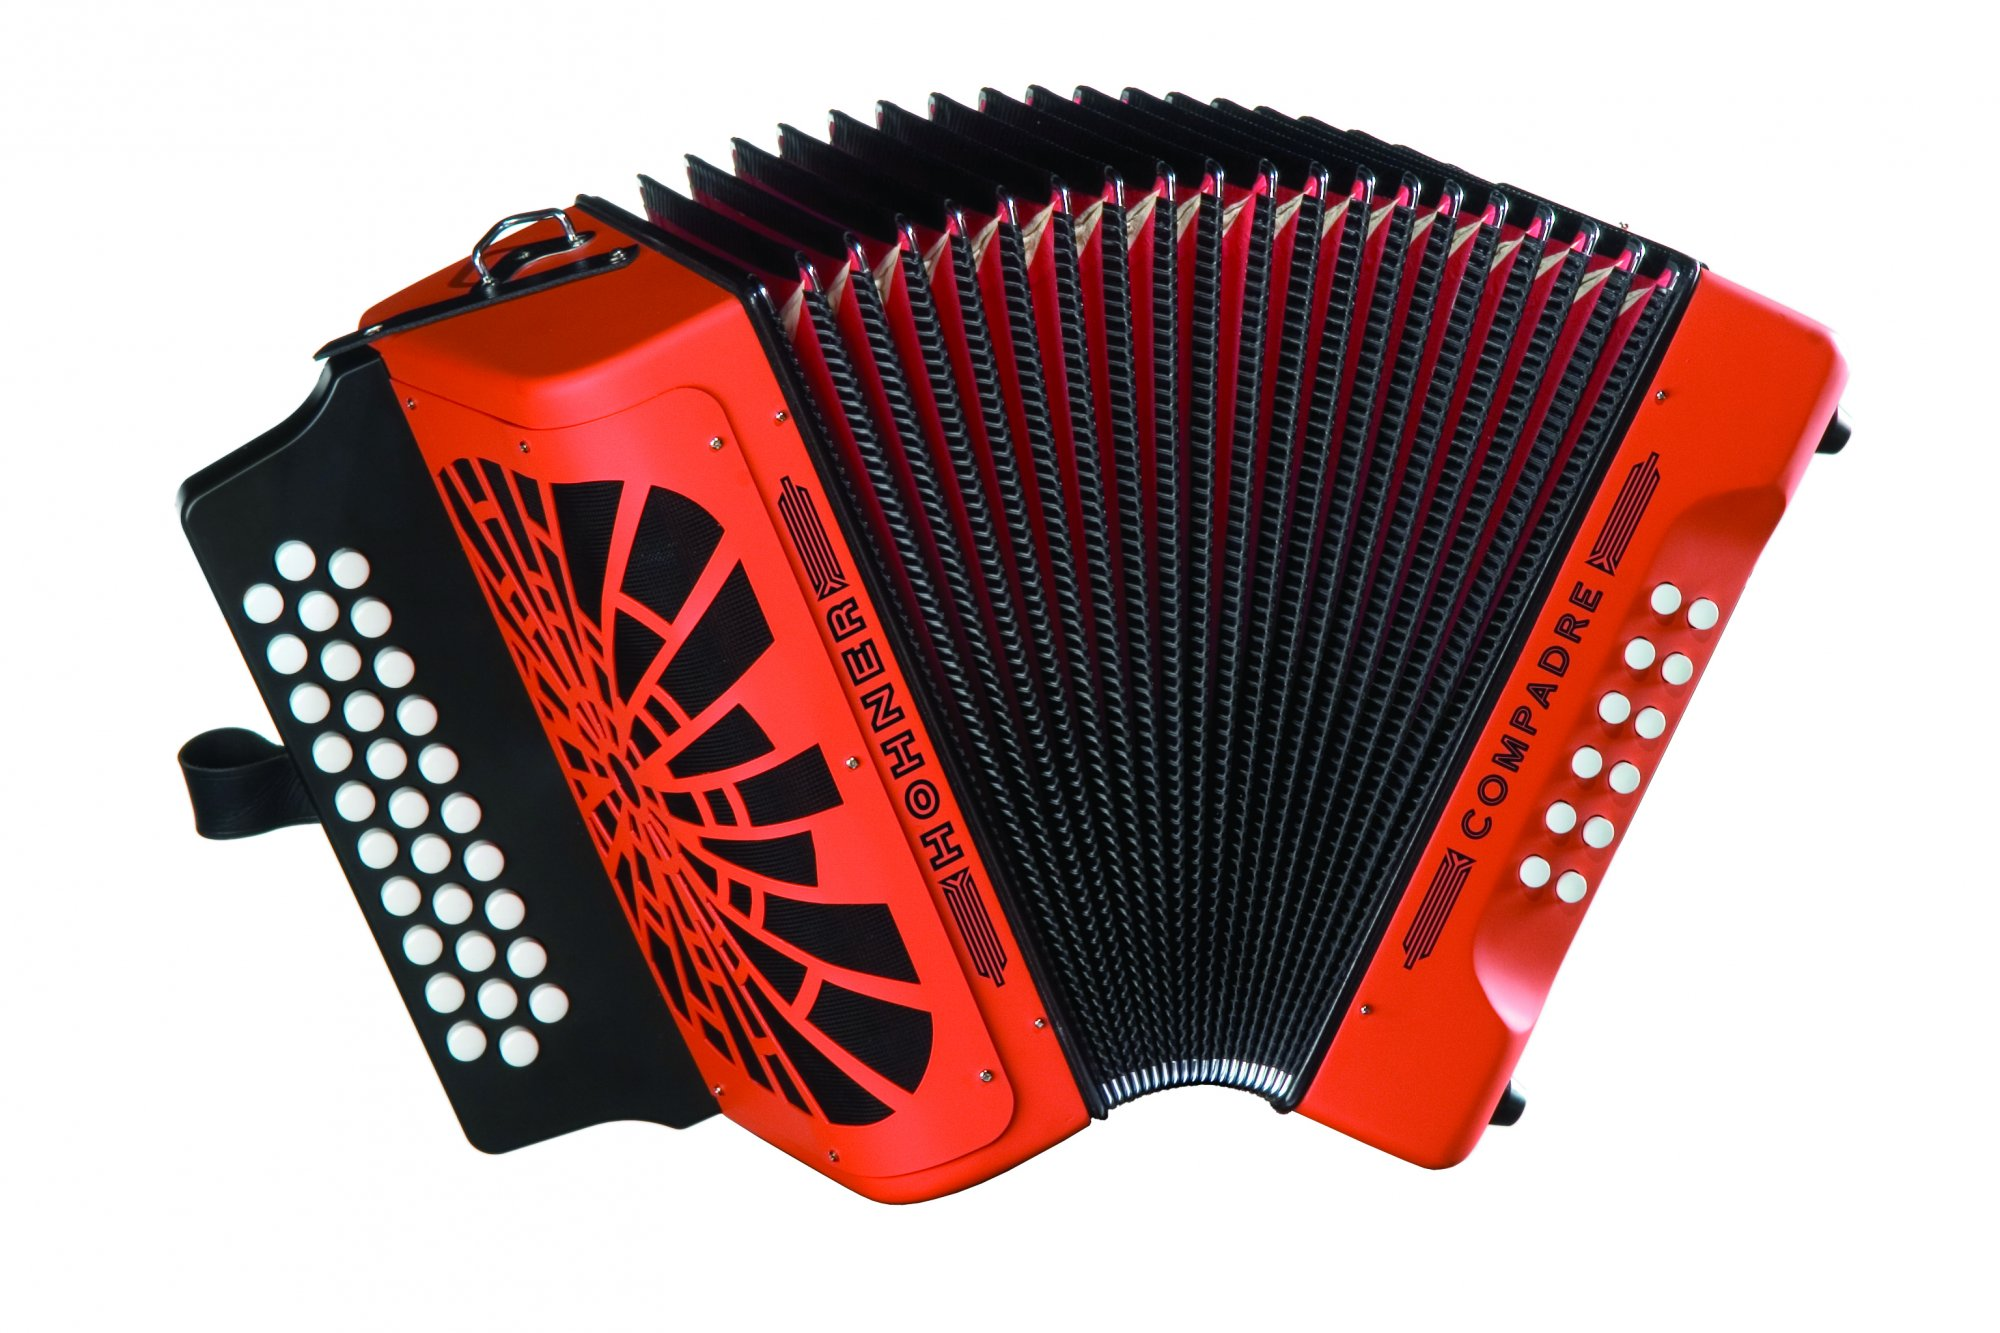 NEW Orange Hohner Compadre Diatonic Button Accordion GCF 31 12